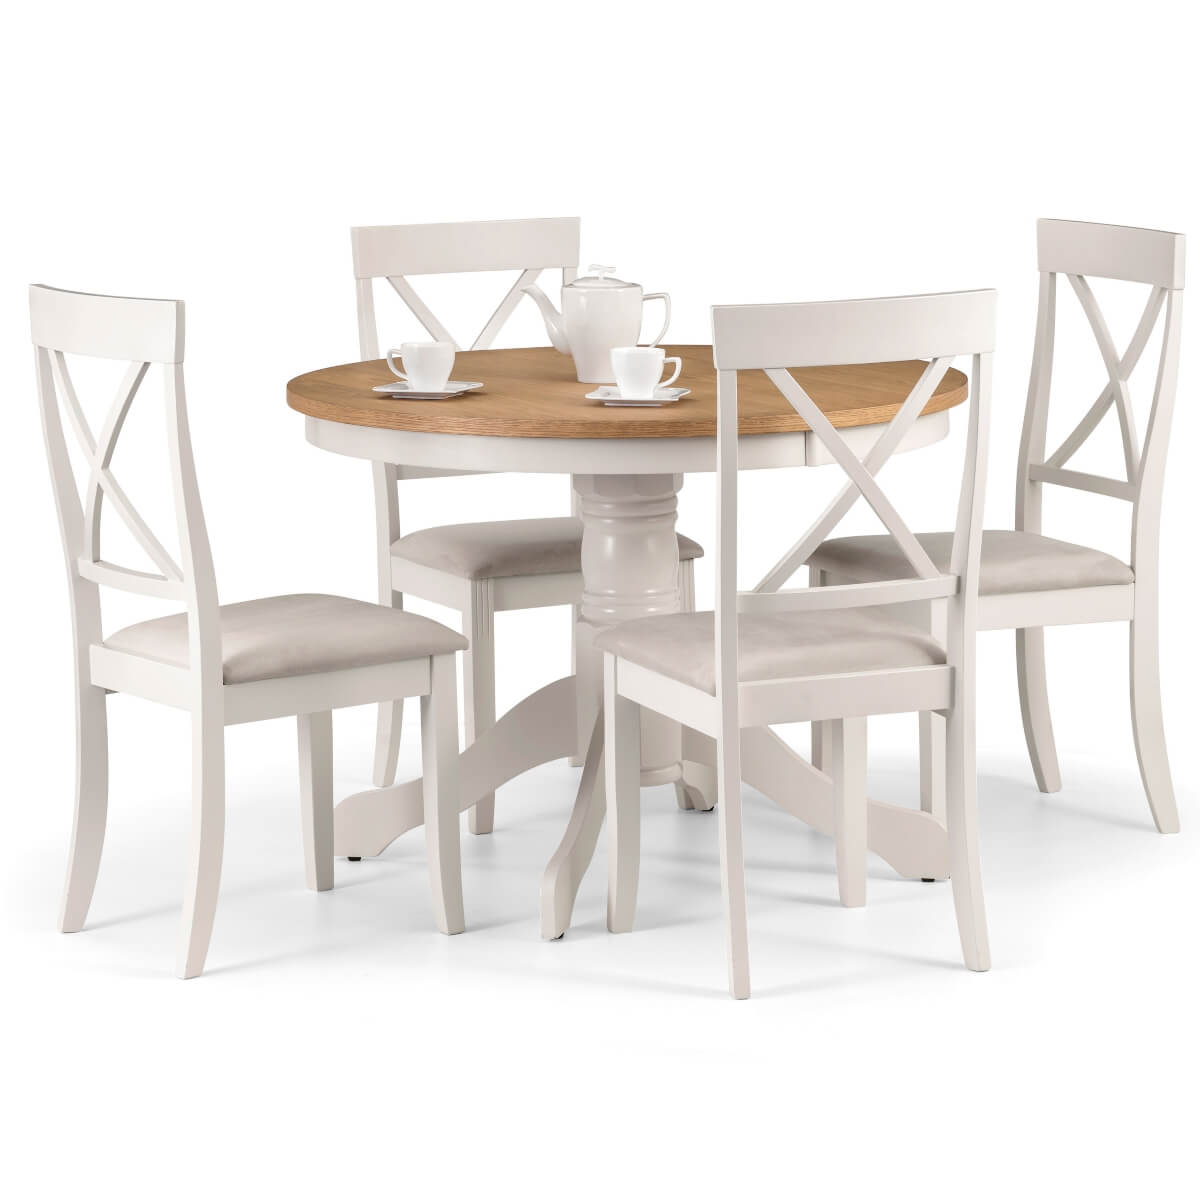 Dining Set Davenport Dining Table And 4 Chairs In Ivory Oak Dav010